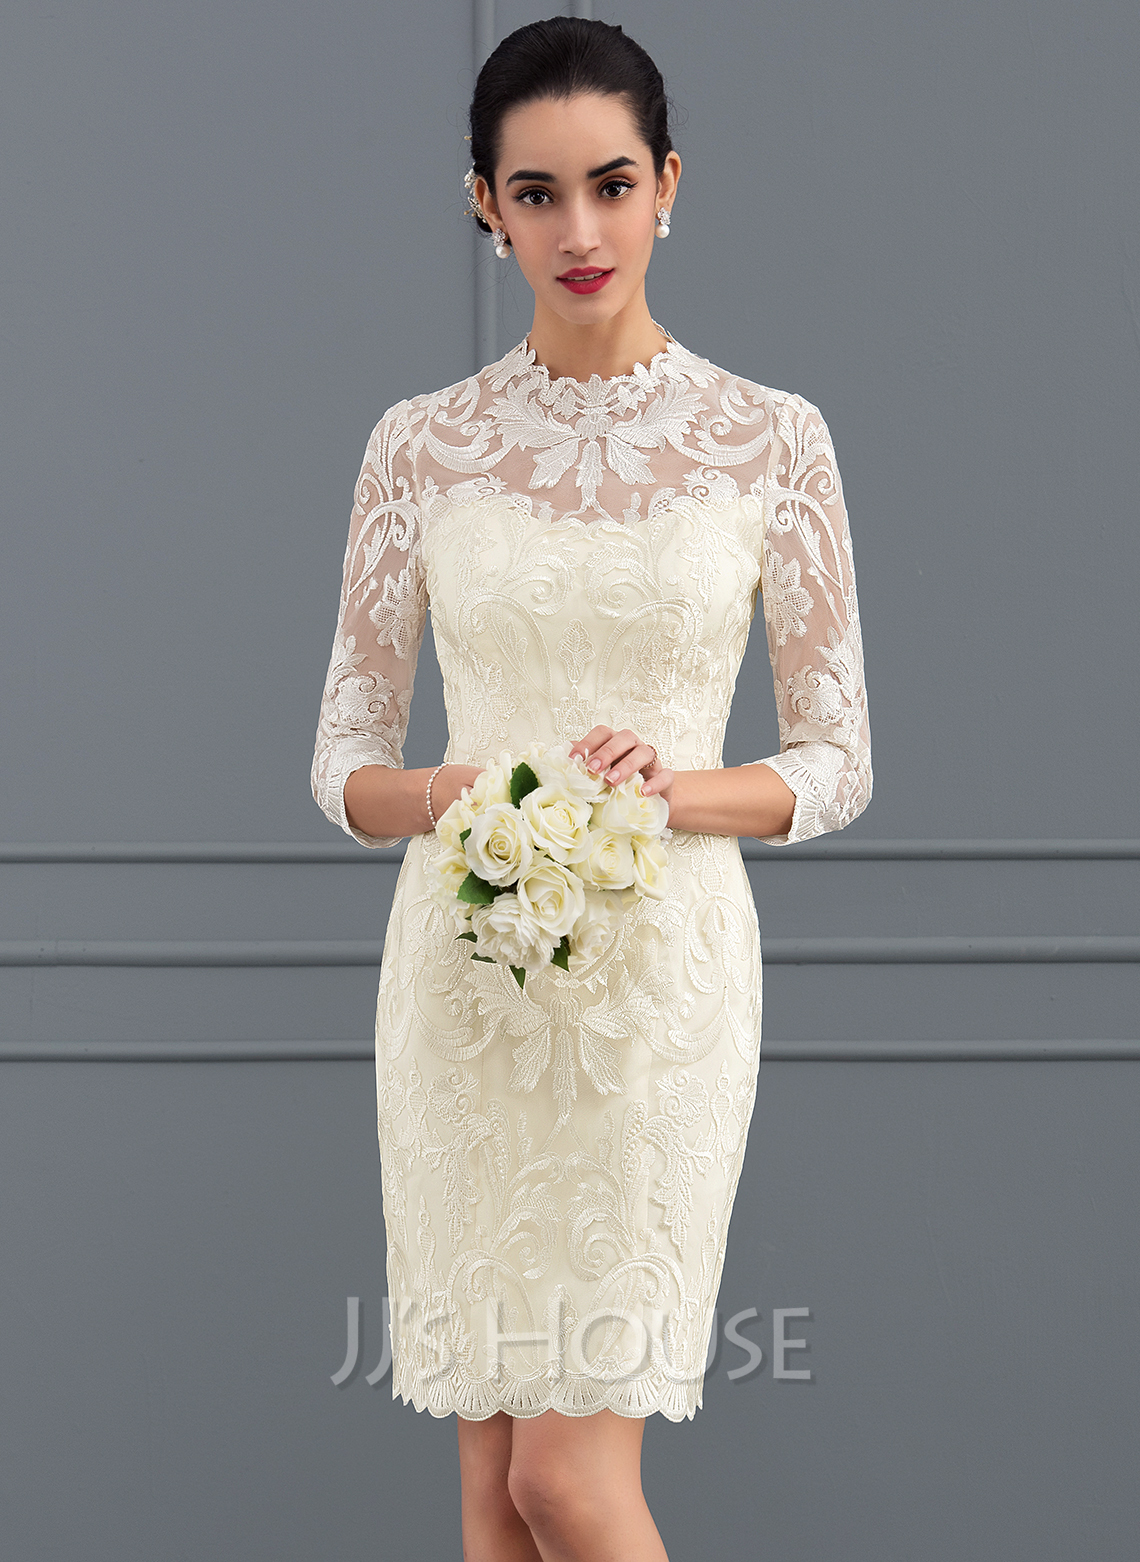 Sheath/Column High Neck Knee Length Lace Wedding Dress